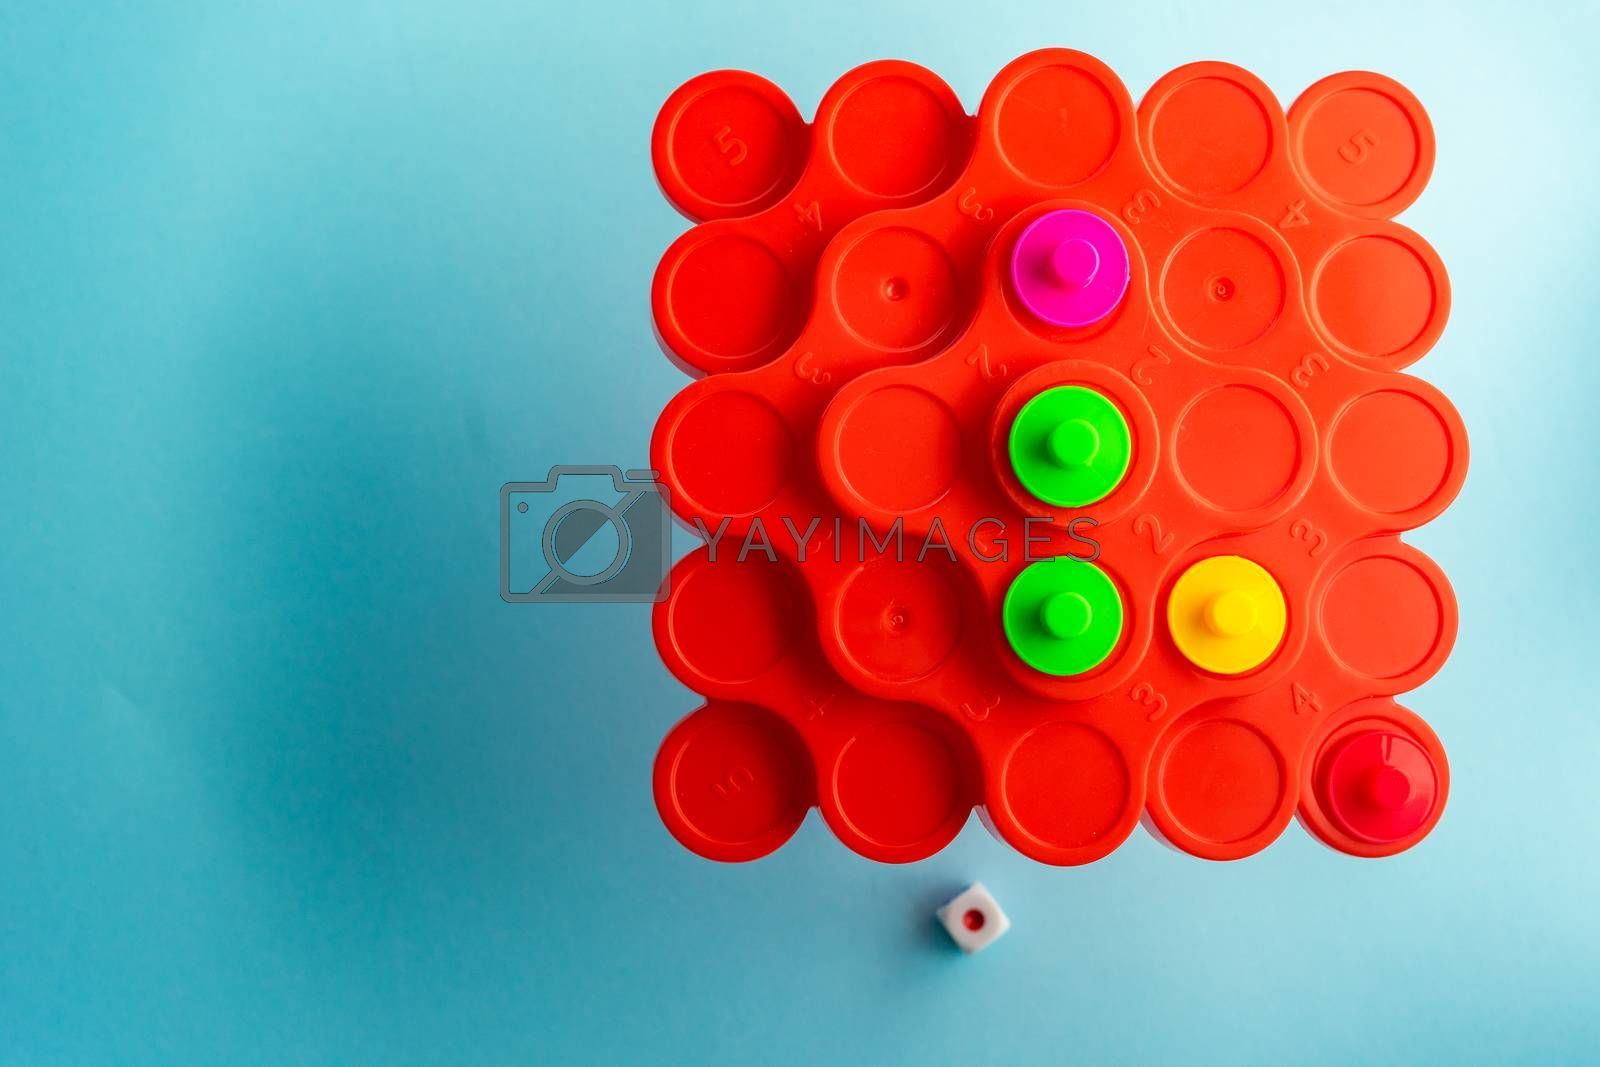 COVID-19 virus concept with board games on pastel background with copy space